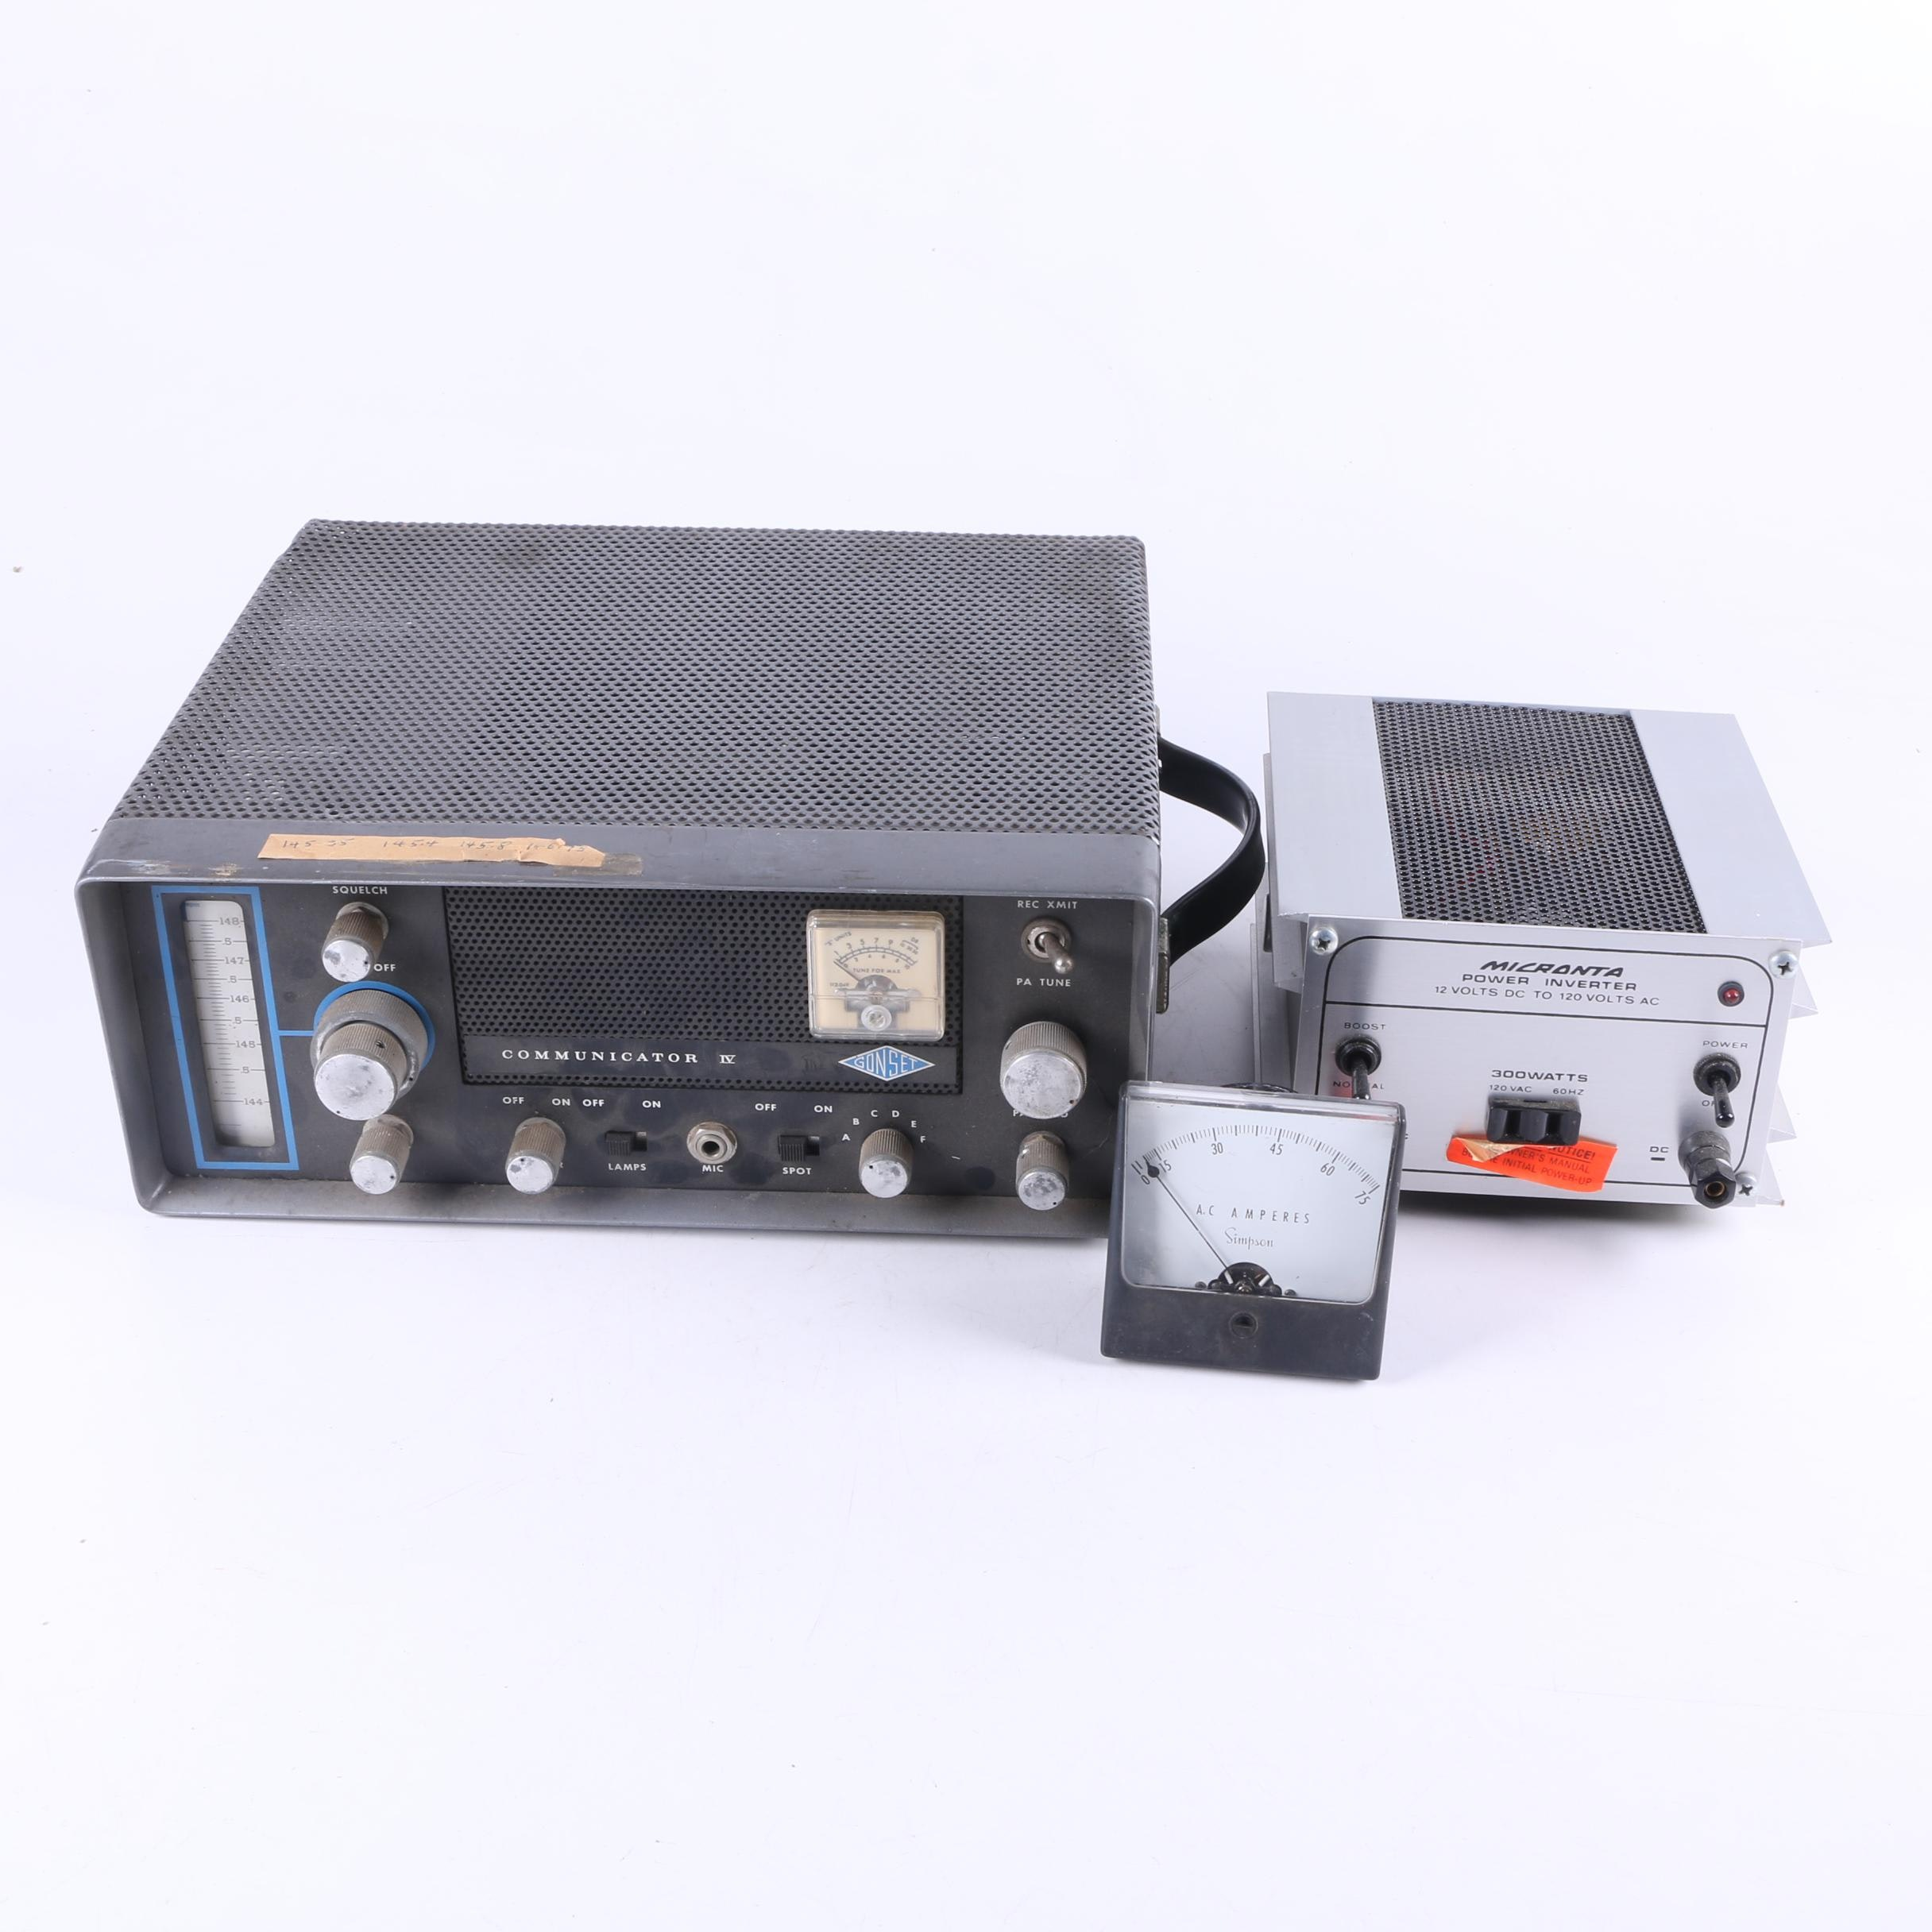 Gonset Communicator IV AM Transceiver with Micronta Power Inverter